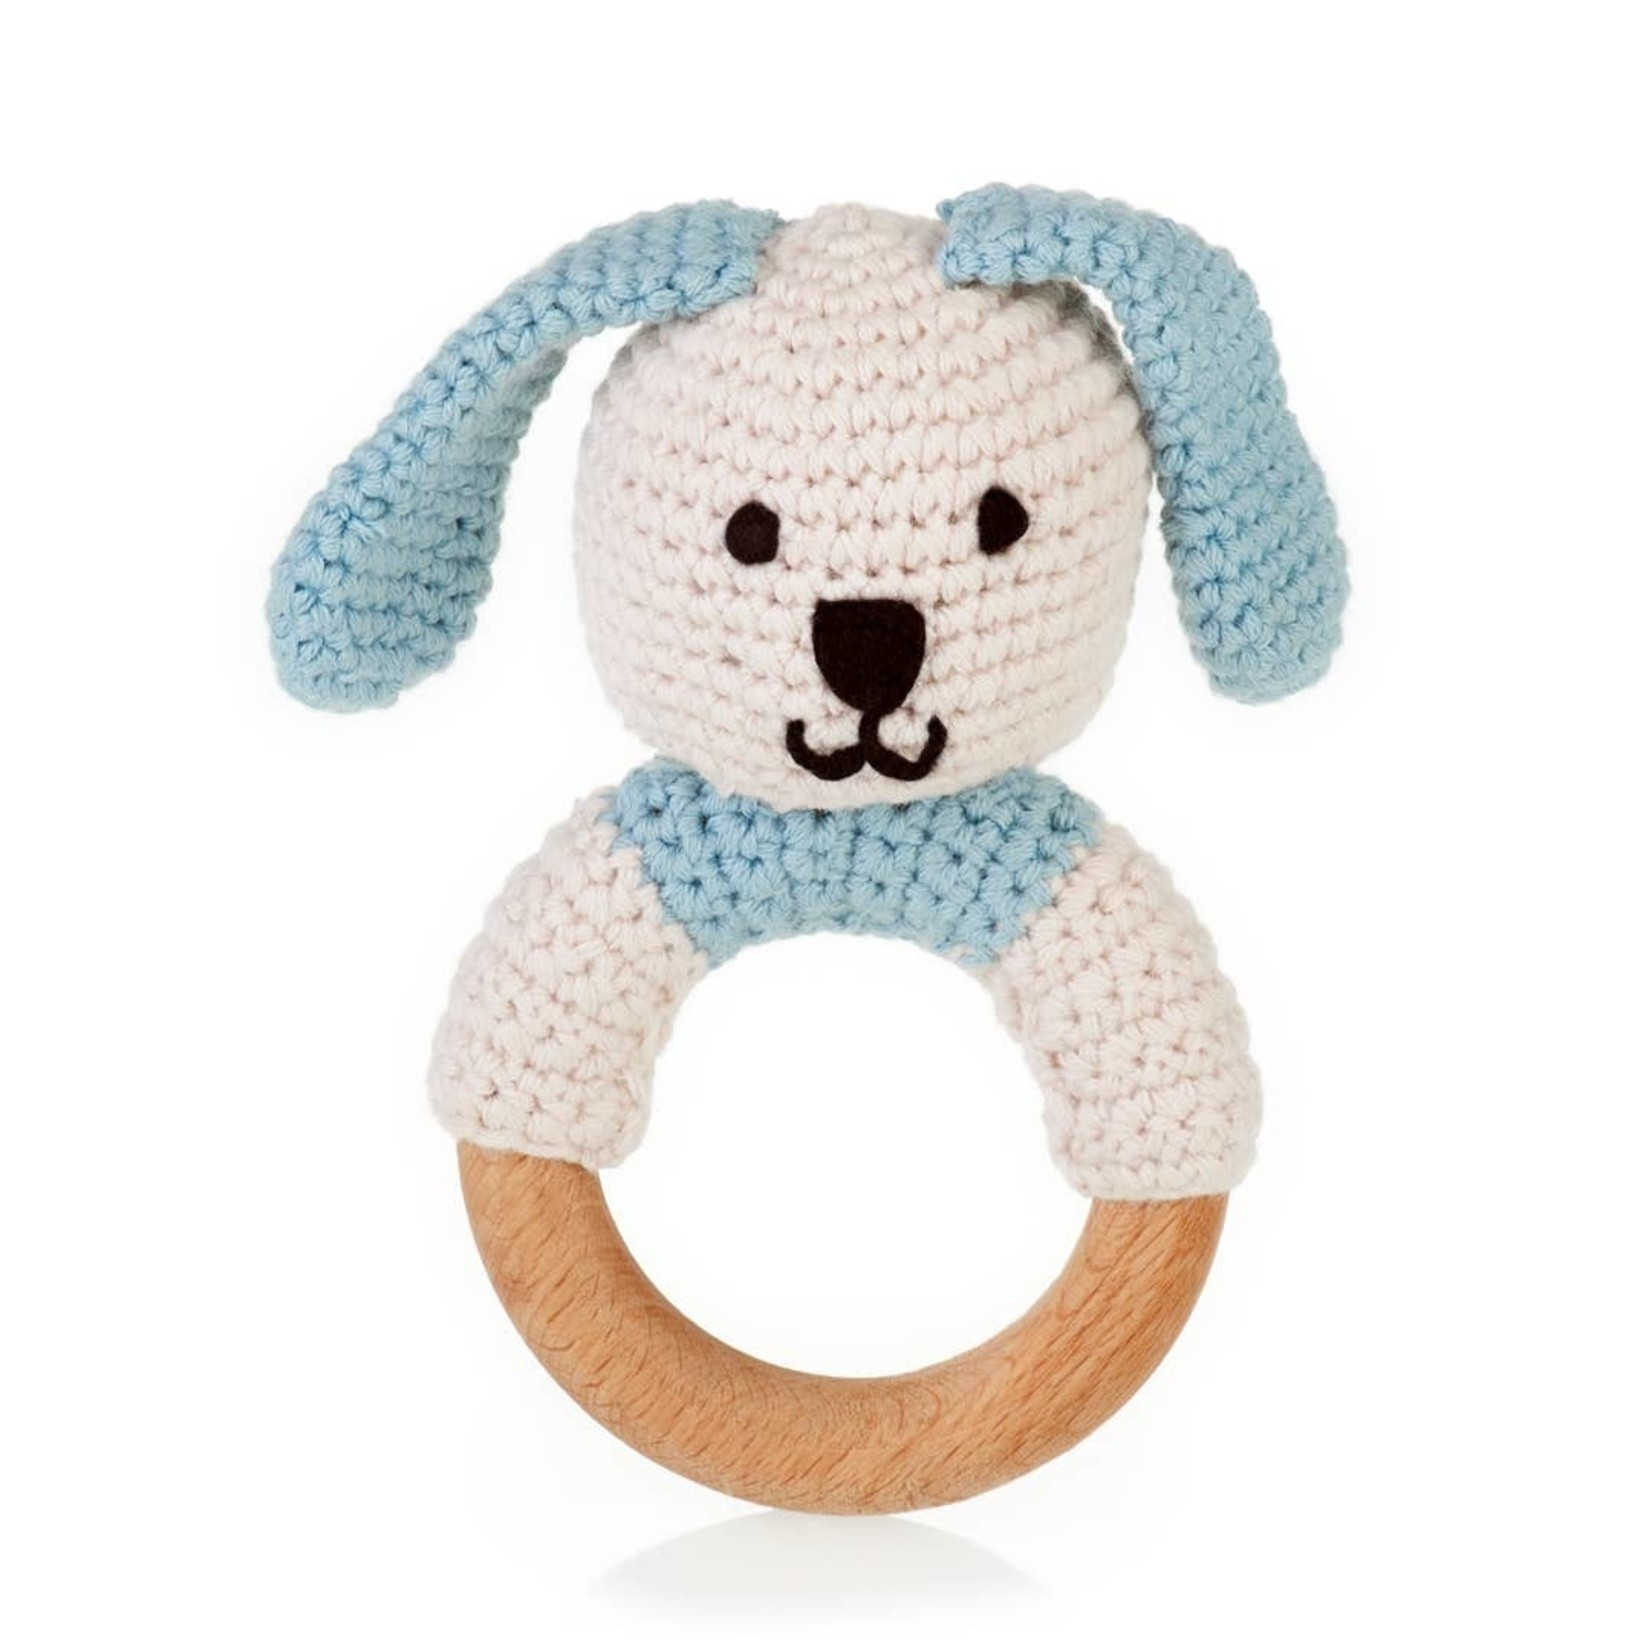 Wooden Teething Ring Bunny in Blue